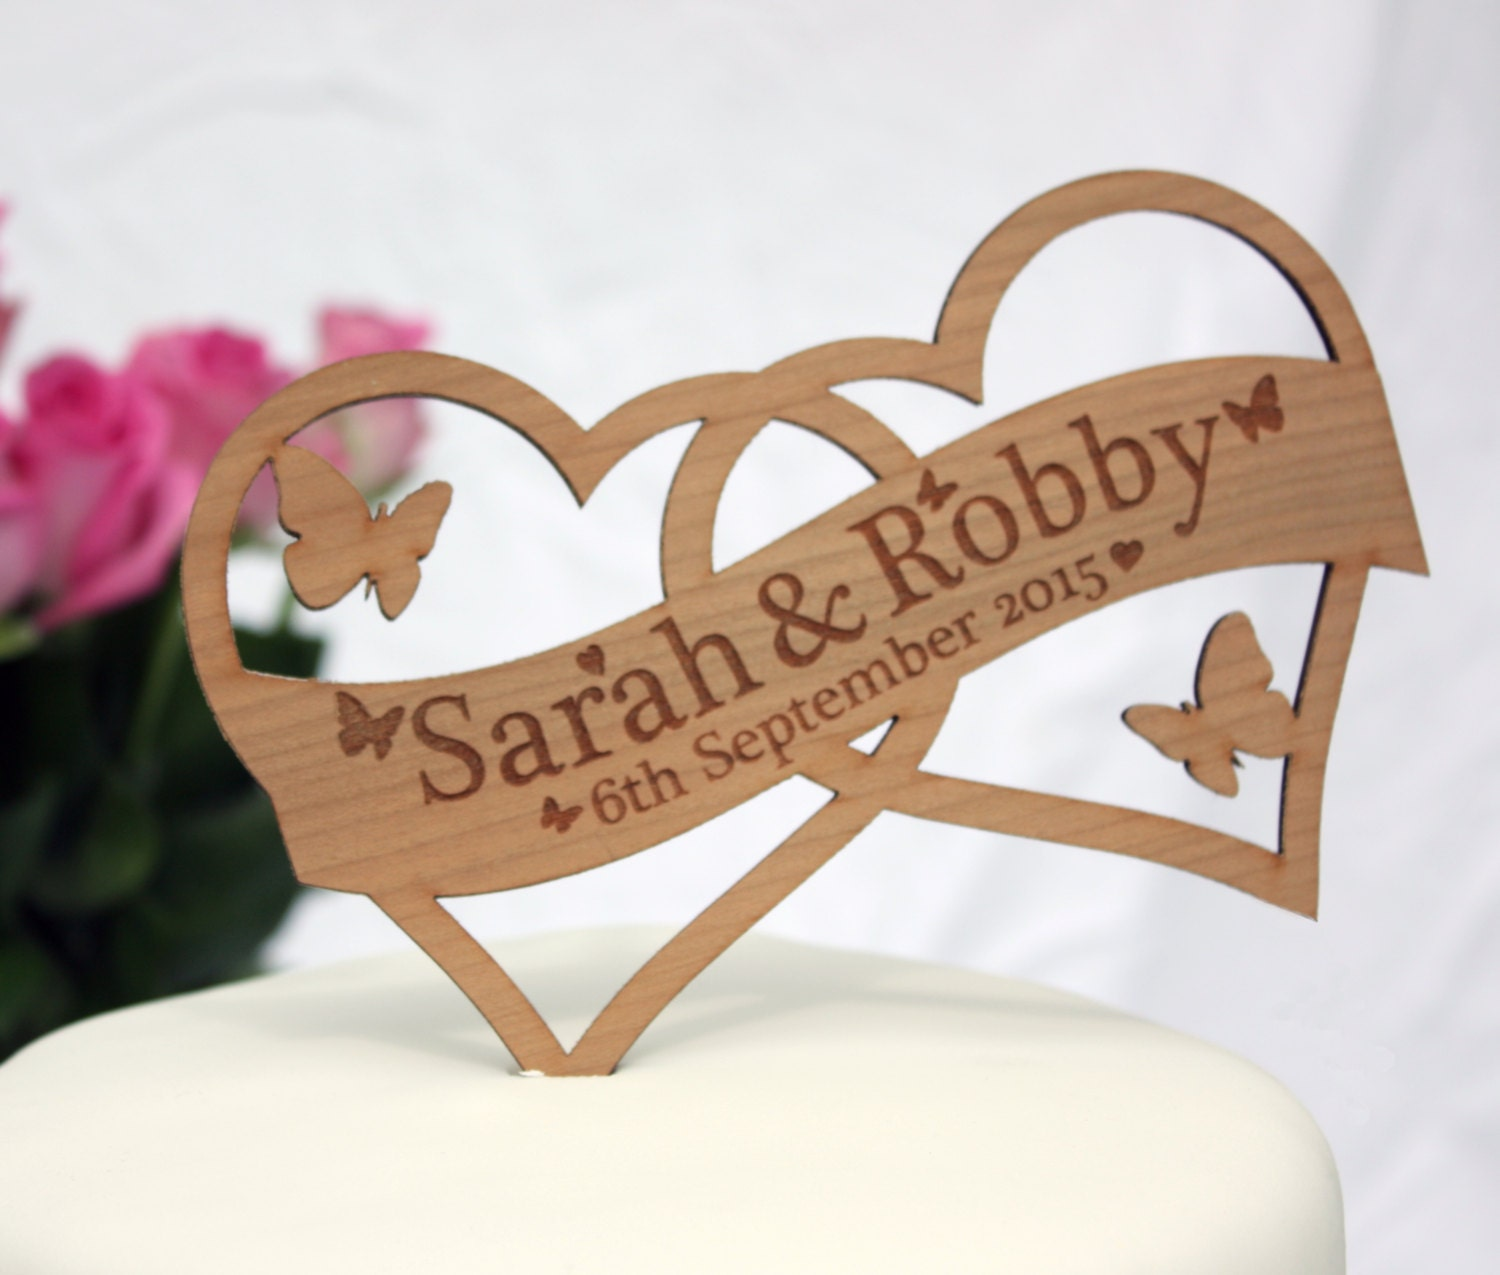 double heart wedding cake topper decoration personalised. Black Bedroom Furniture Sets. Home Design Ideas